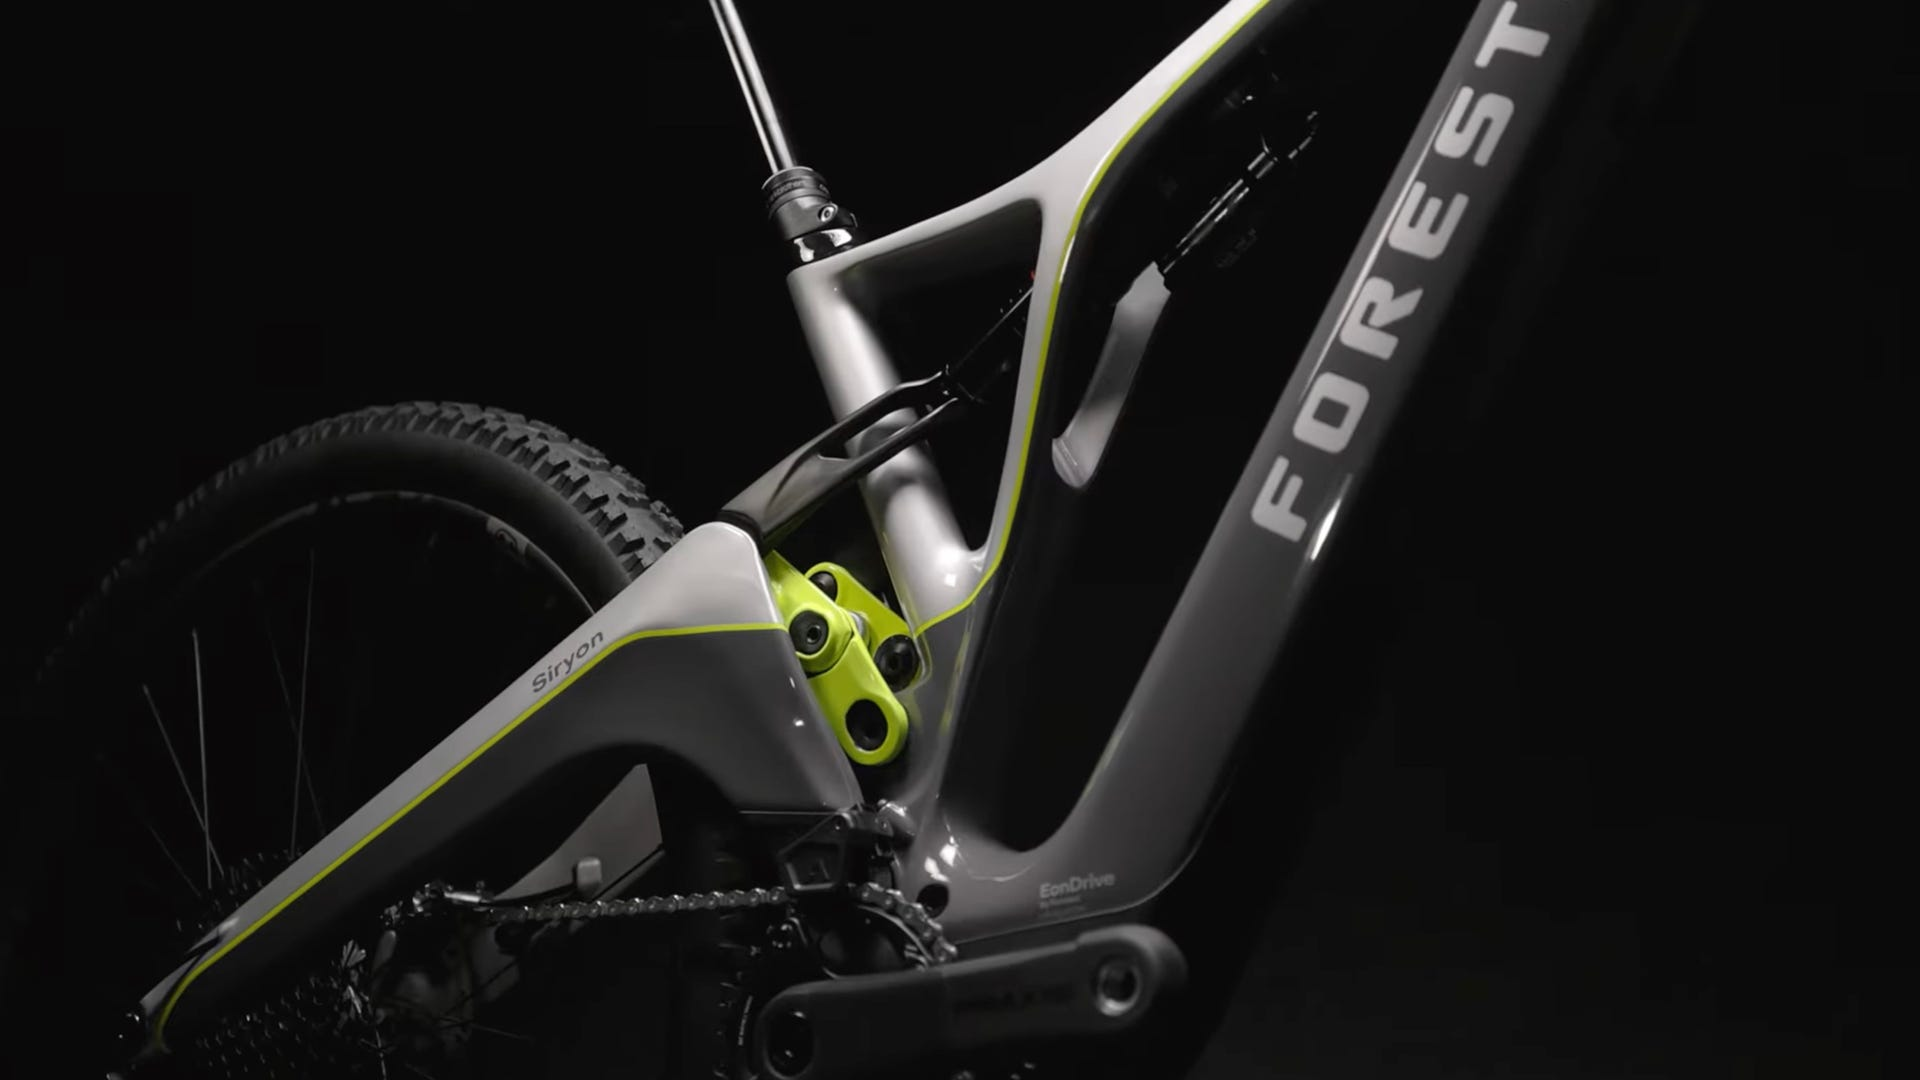 Forestal twin-lever carbon frame